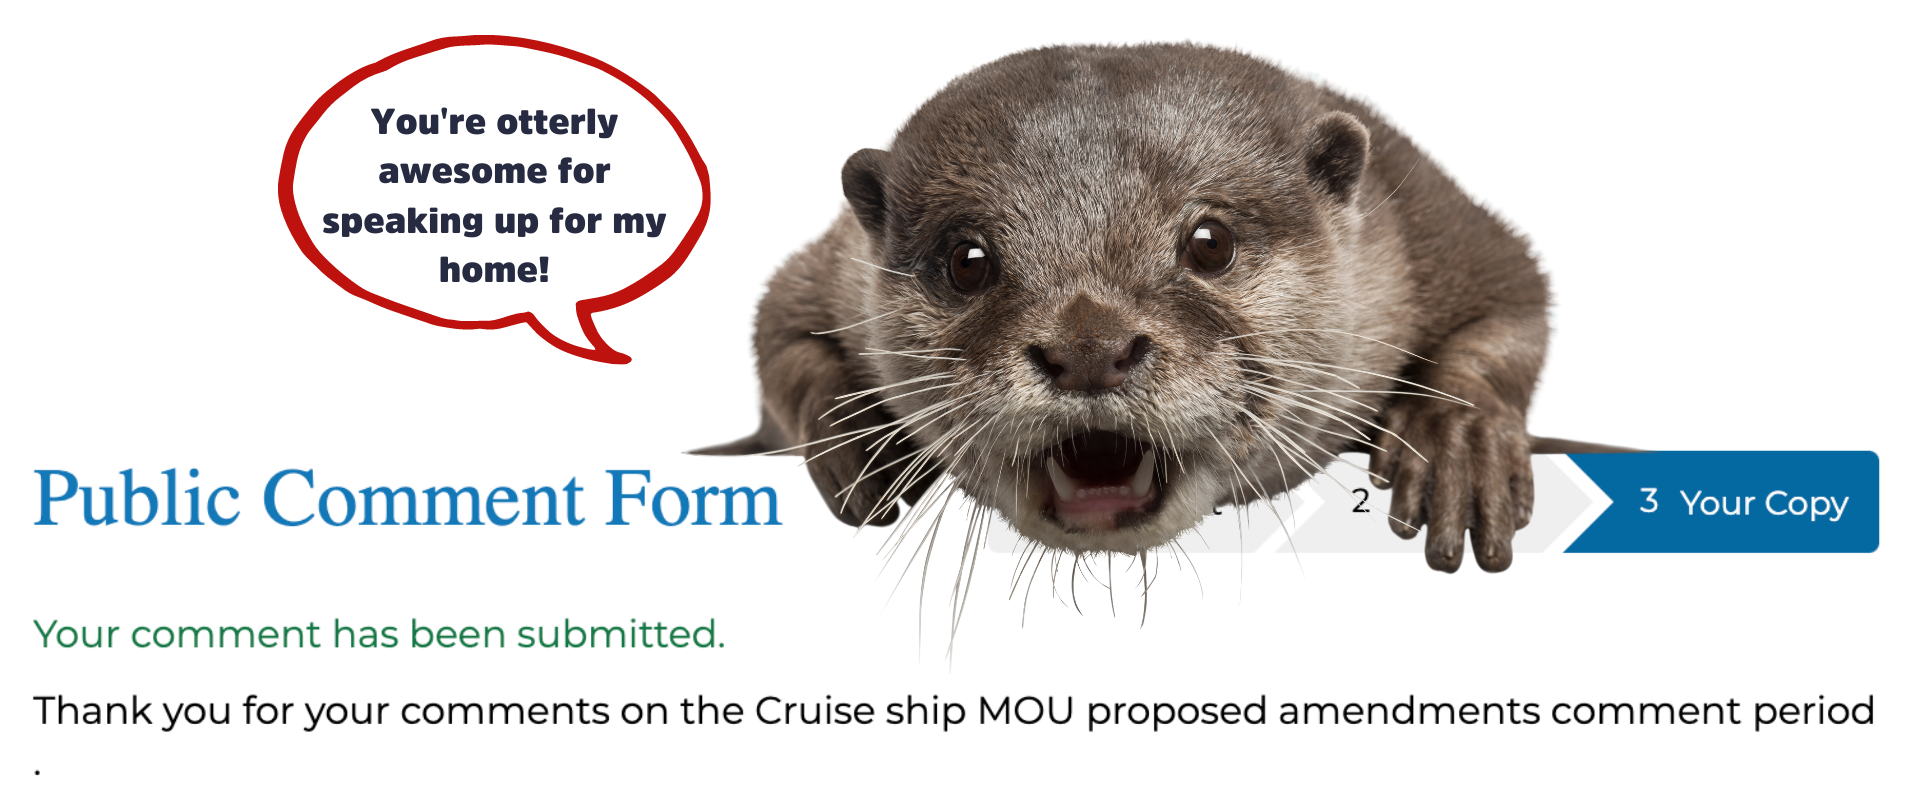 Frankie the otter thanks you for submitting comment to MOU